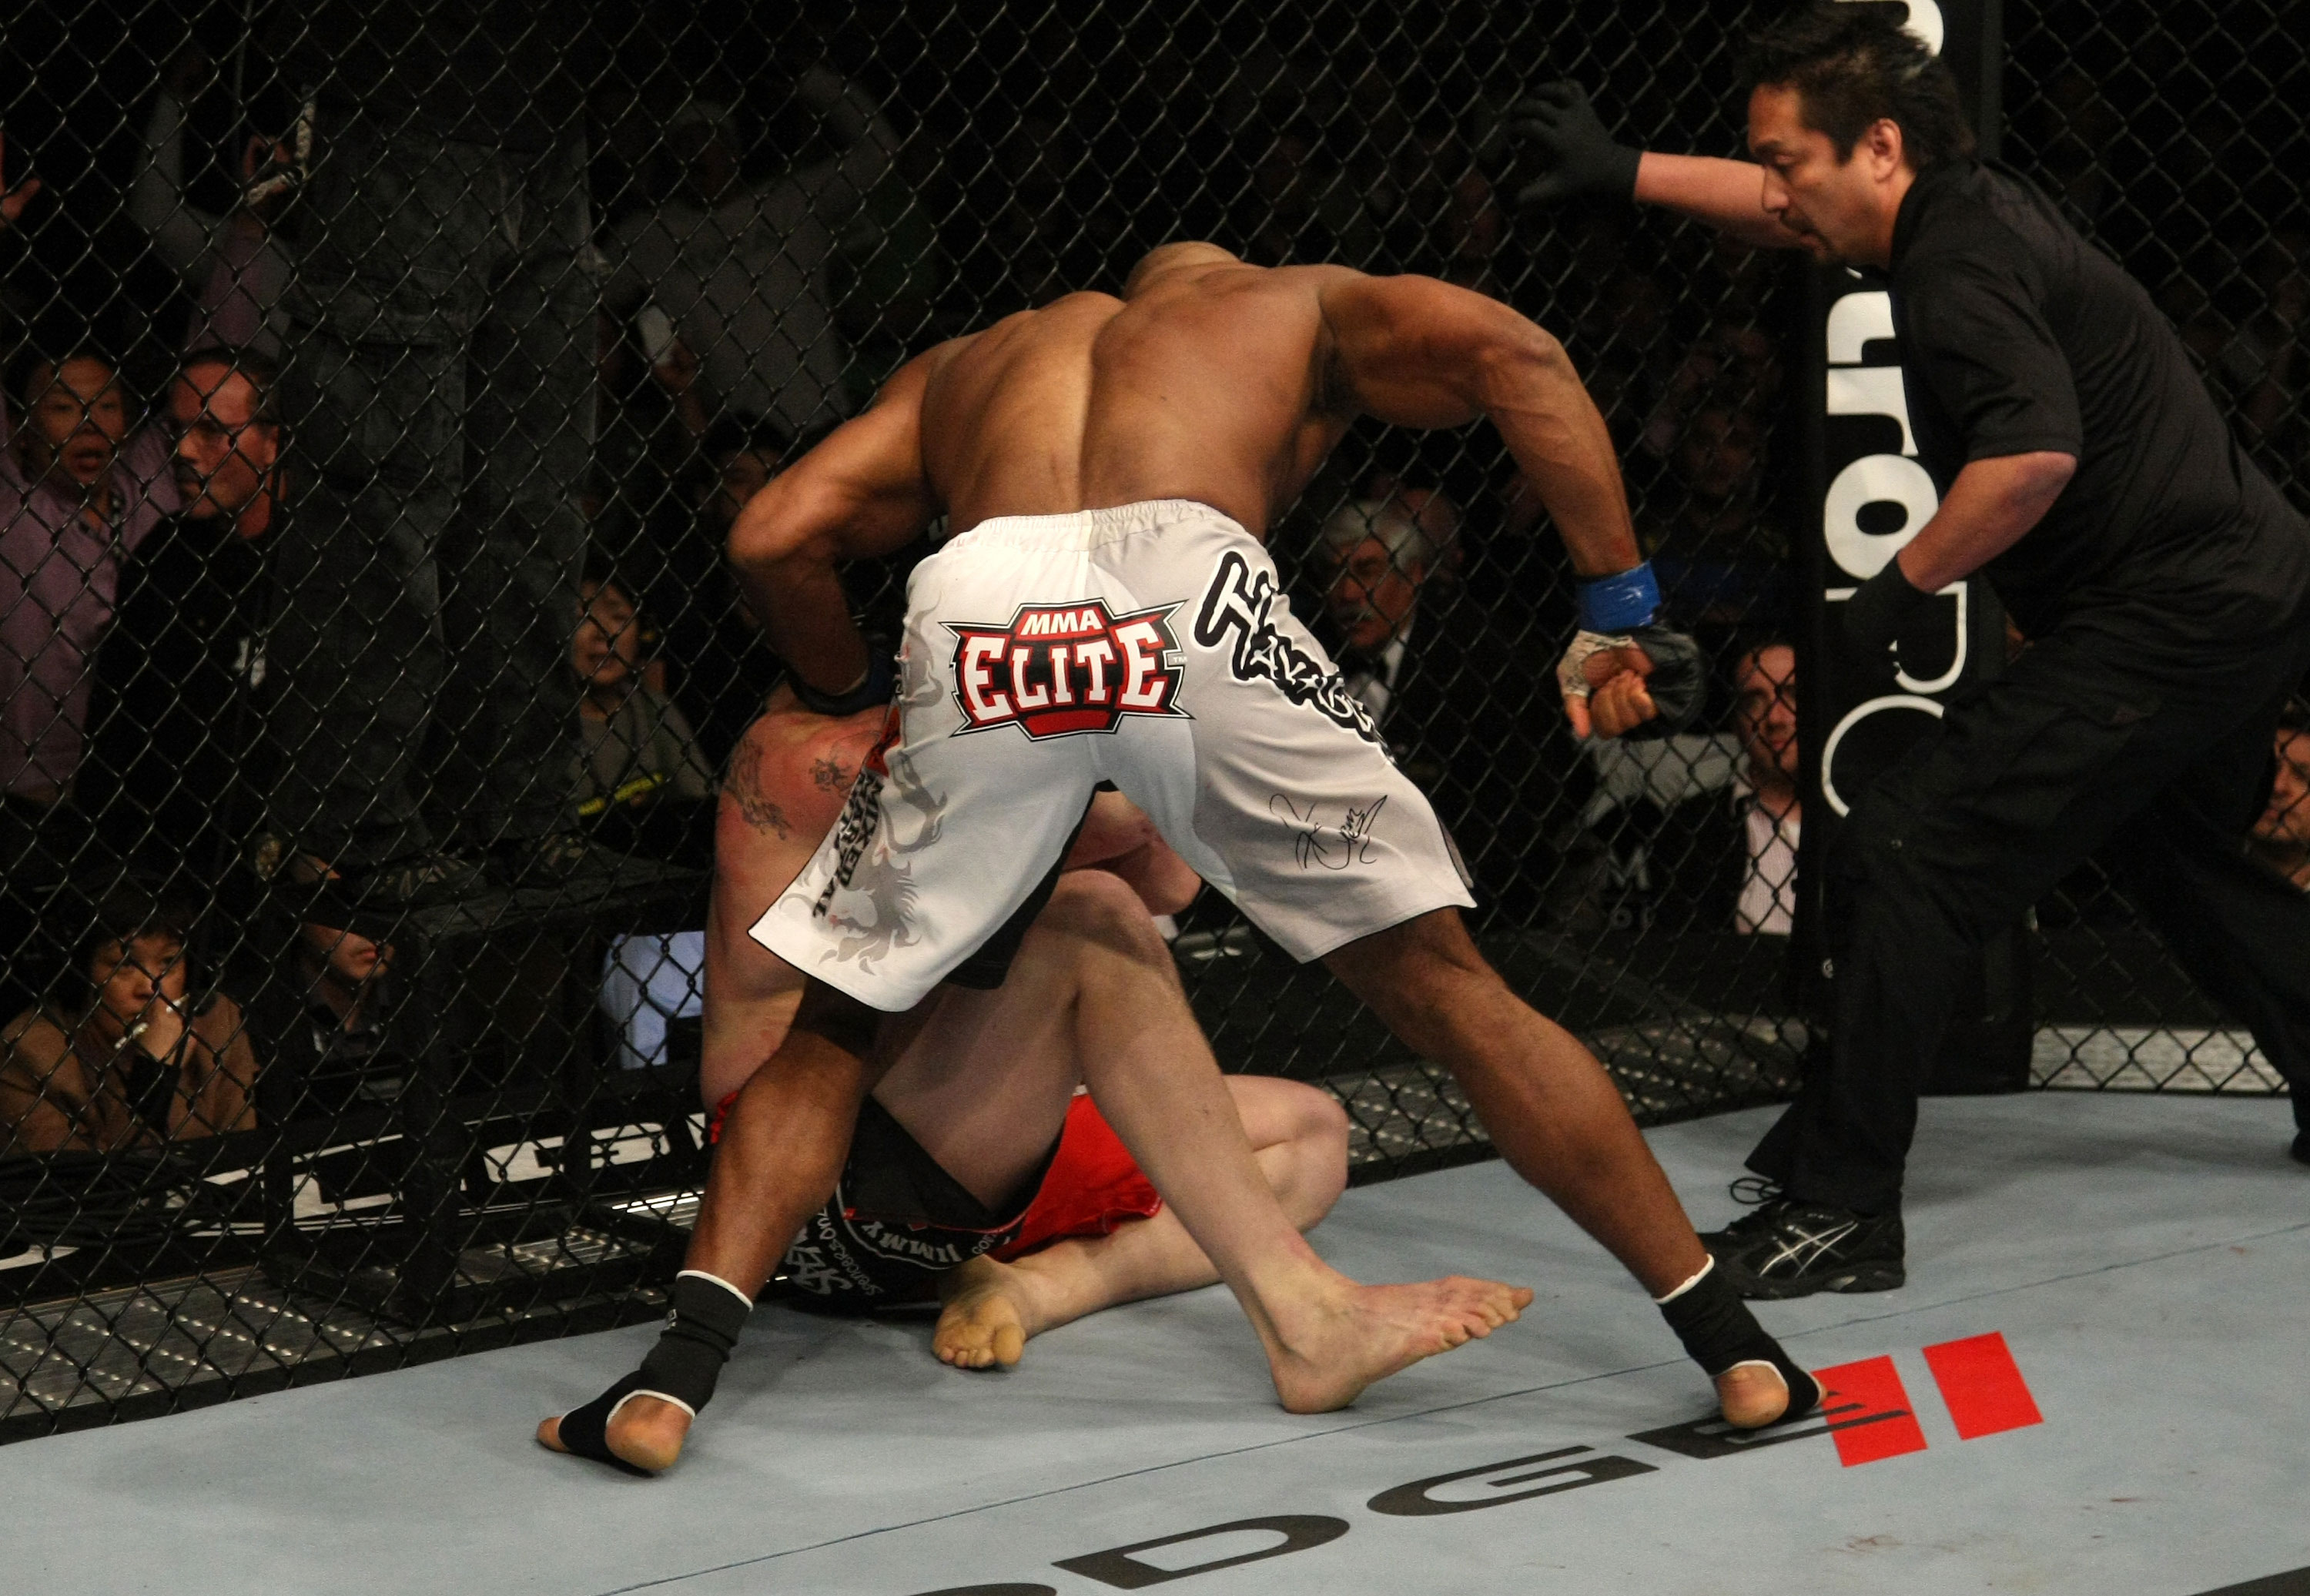 LAS VEGAS, NV - DECEMBER 30:  Alistair Overeem (white shorts) punches Brock Lesnar during the UFC 141 event at the MGM Grand Garden Arena on December 30, 2011 in Las Vegas, Nevada.  (Photo by Donald Miralle/Zuffa LLC/Zuffa LLC via Getty Images) *** Local Caption *** Alistair Overeem